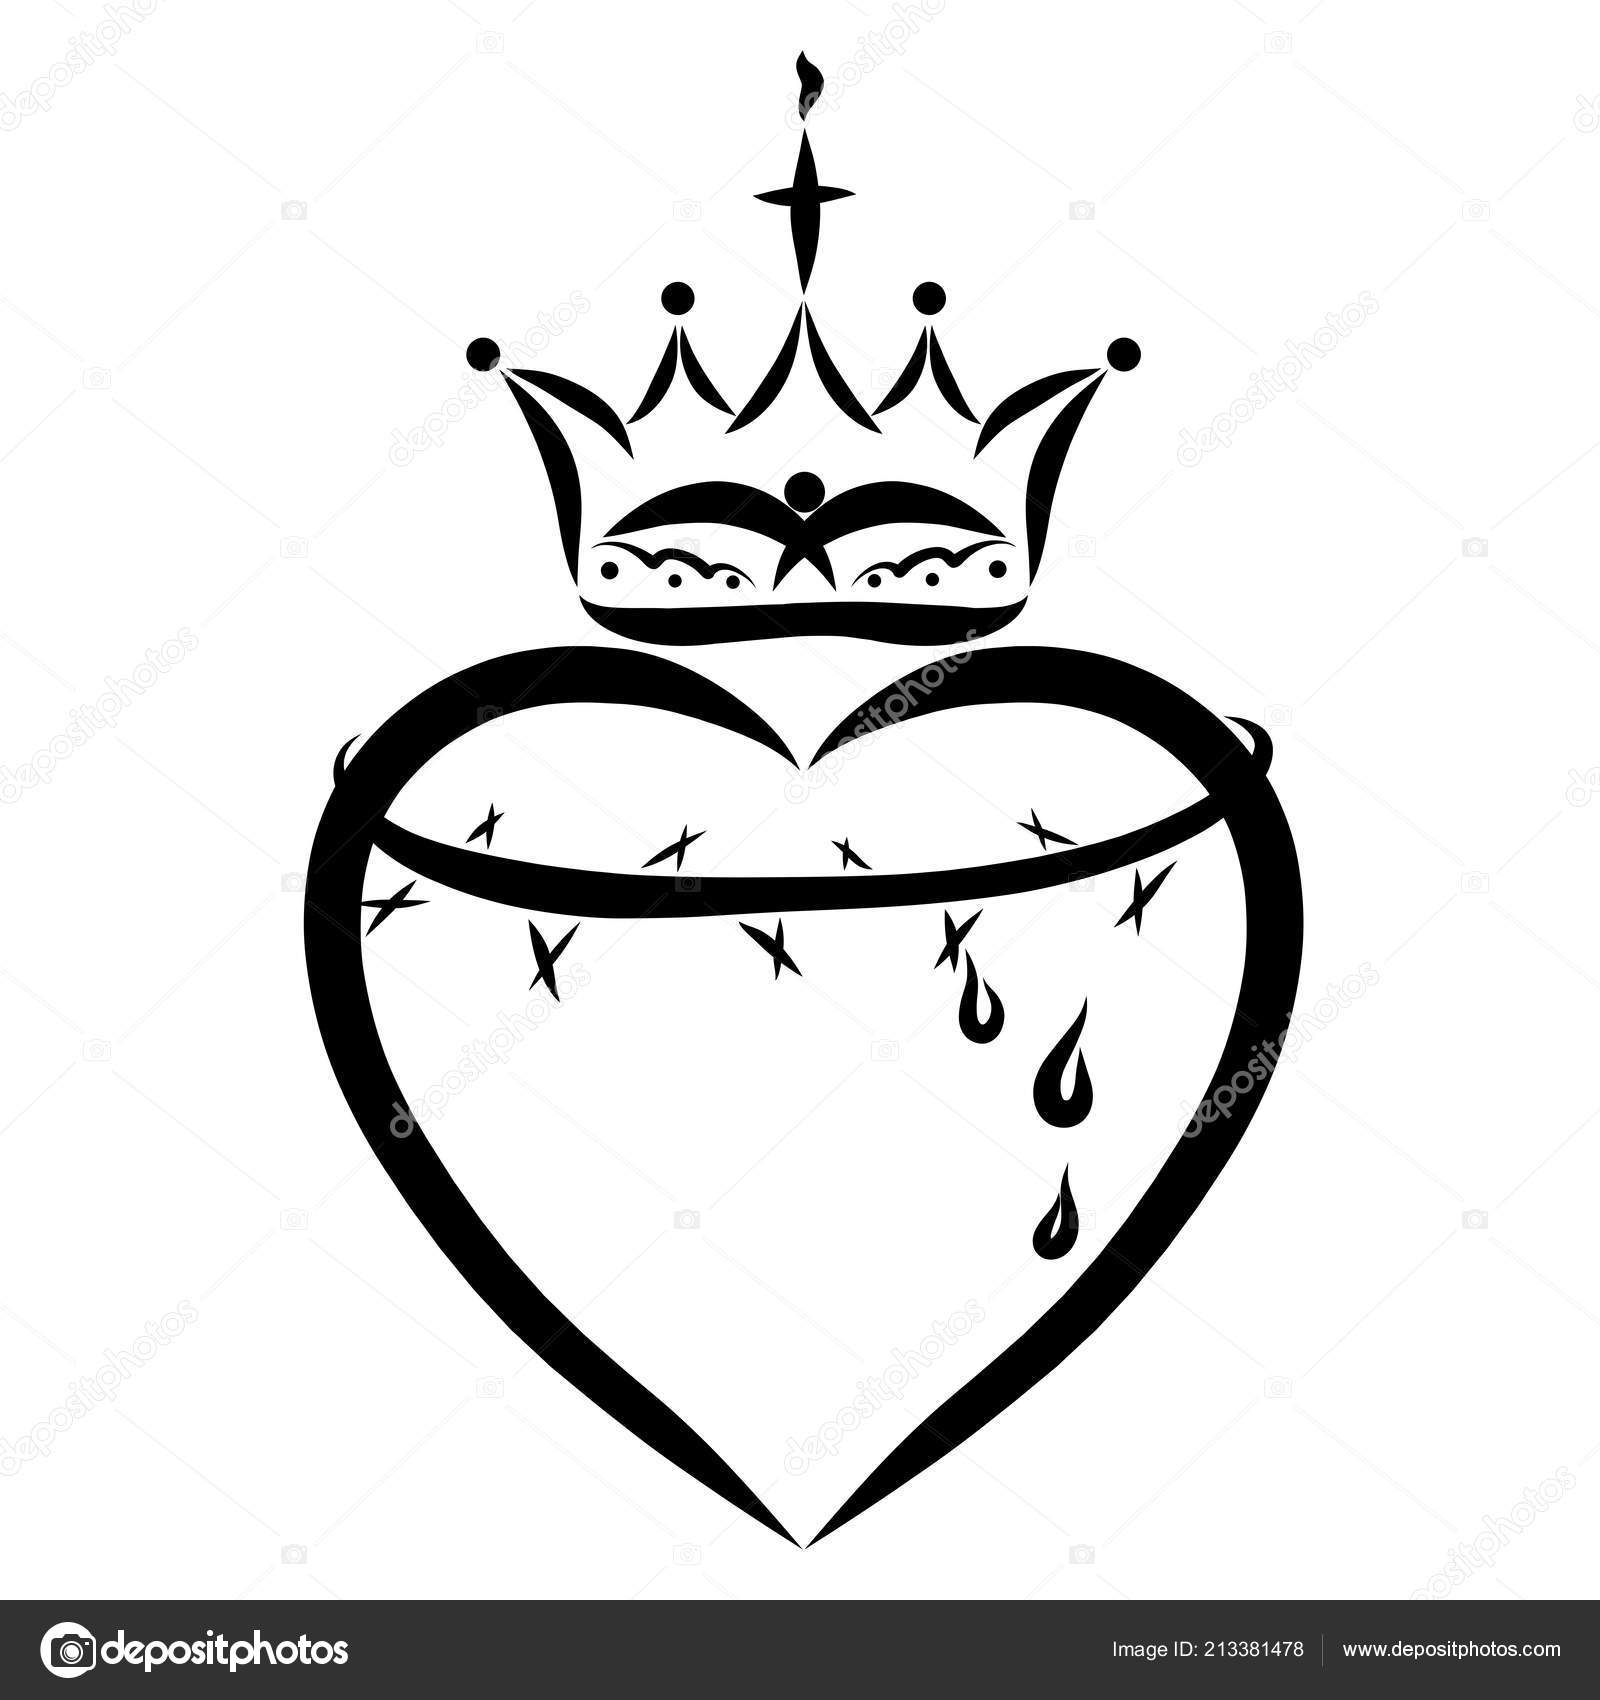 Heart Crown Thorns Redemption Victory — Stock Photo